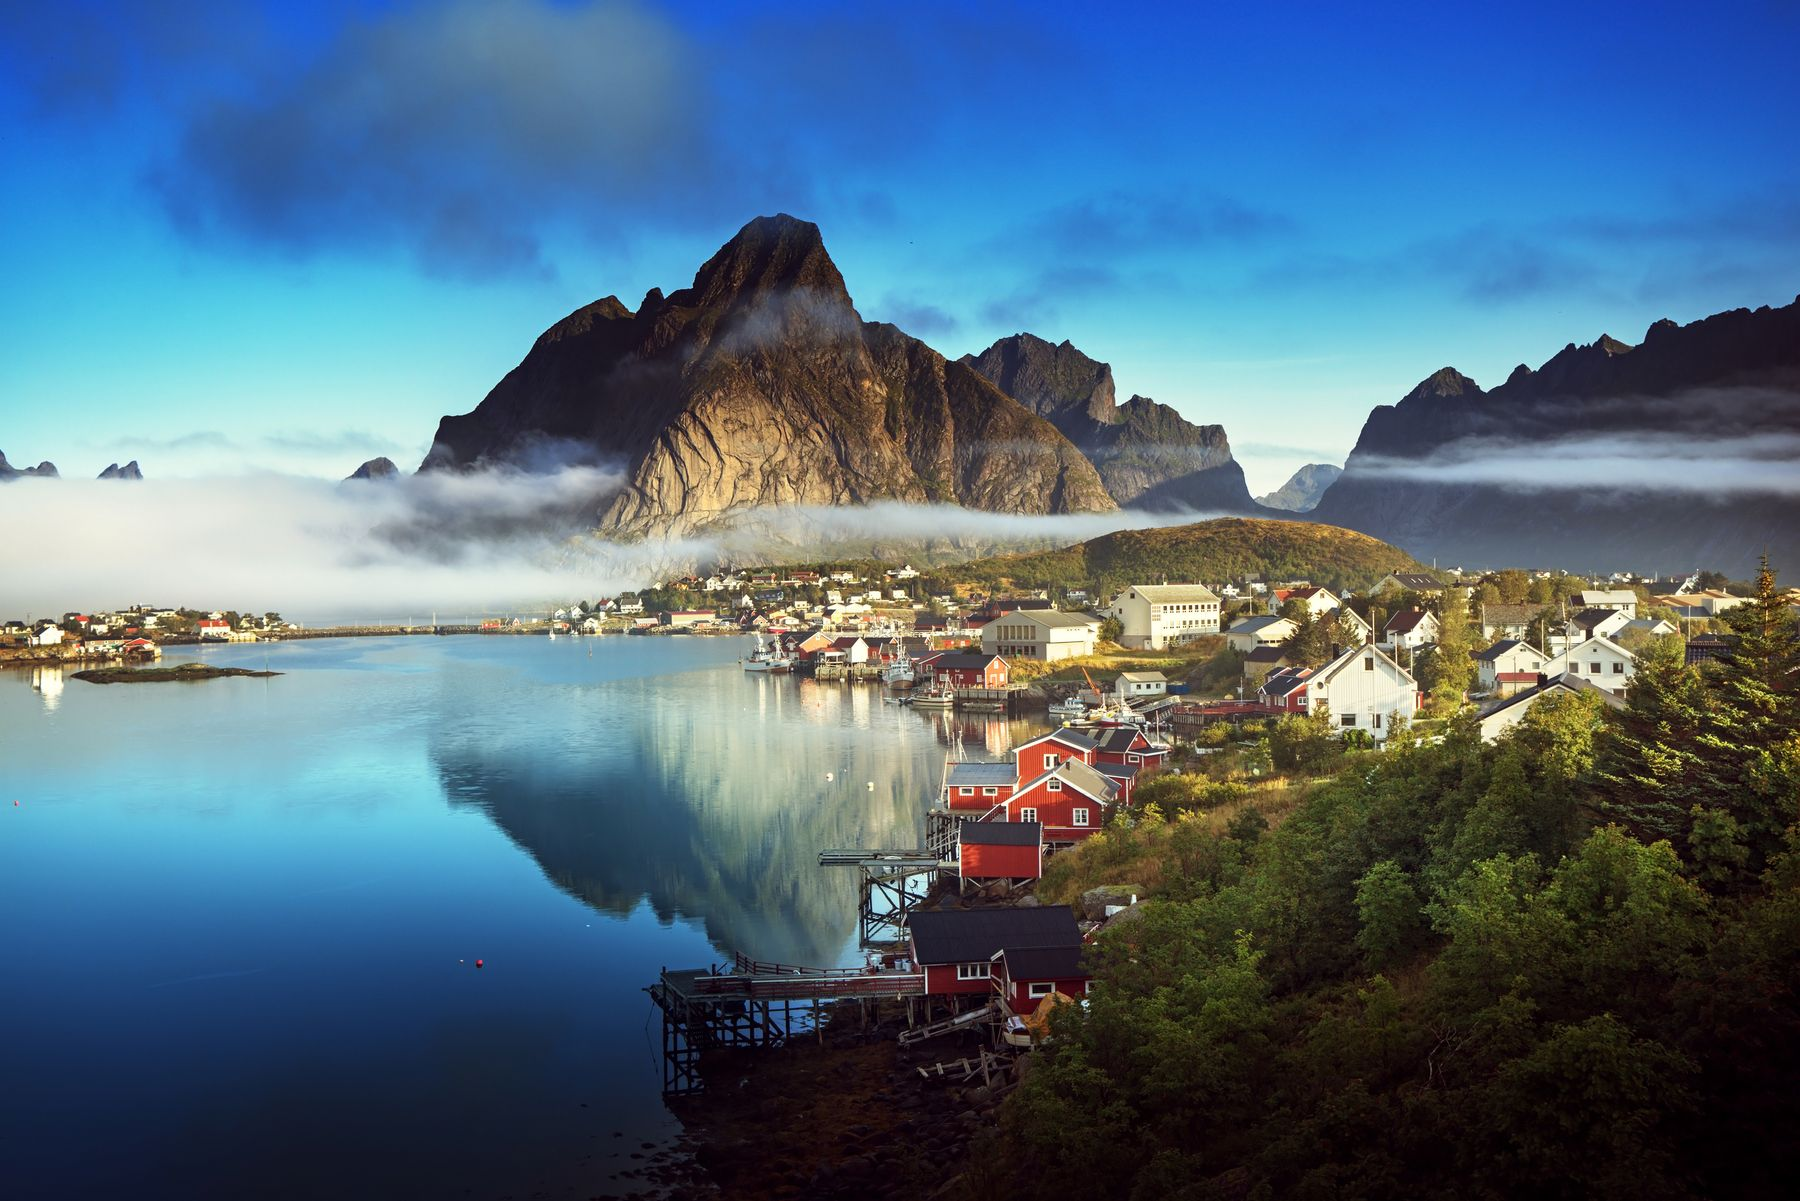 Picture shows the Lofoten Archipelgao, one of our unexpected destinations in Norway. You can see low cloud over blue waters, with mountains in the background and their reflection in the water. Closer to the camera we see red and white houses, and a pier with fishing boats, as well as lots of trees.